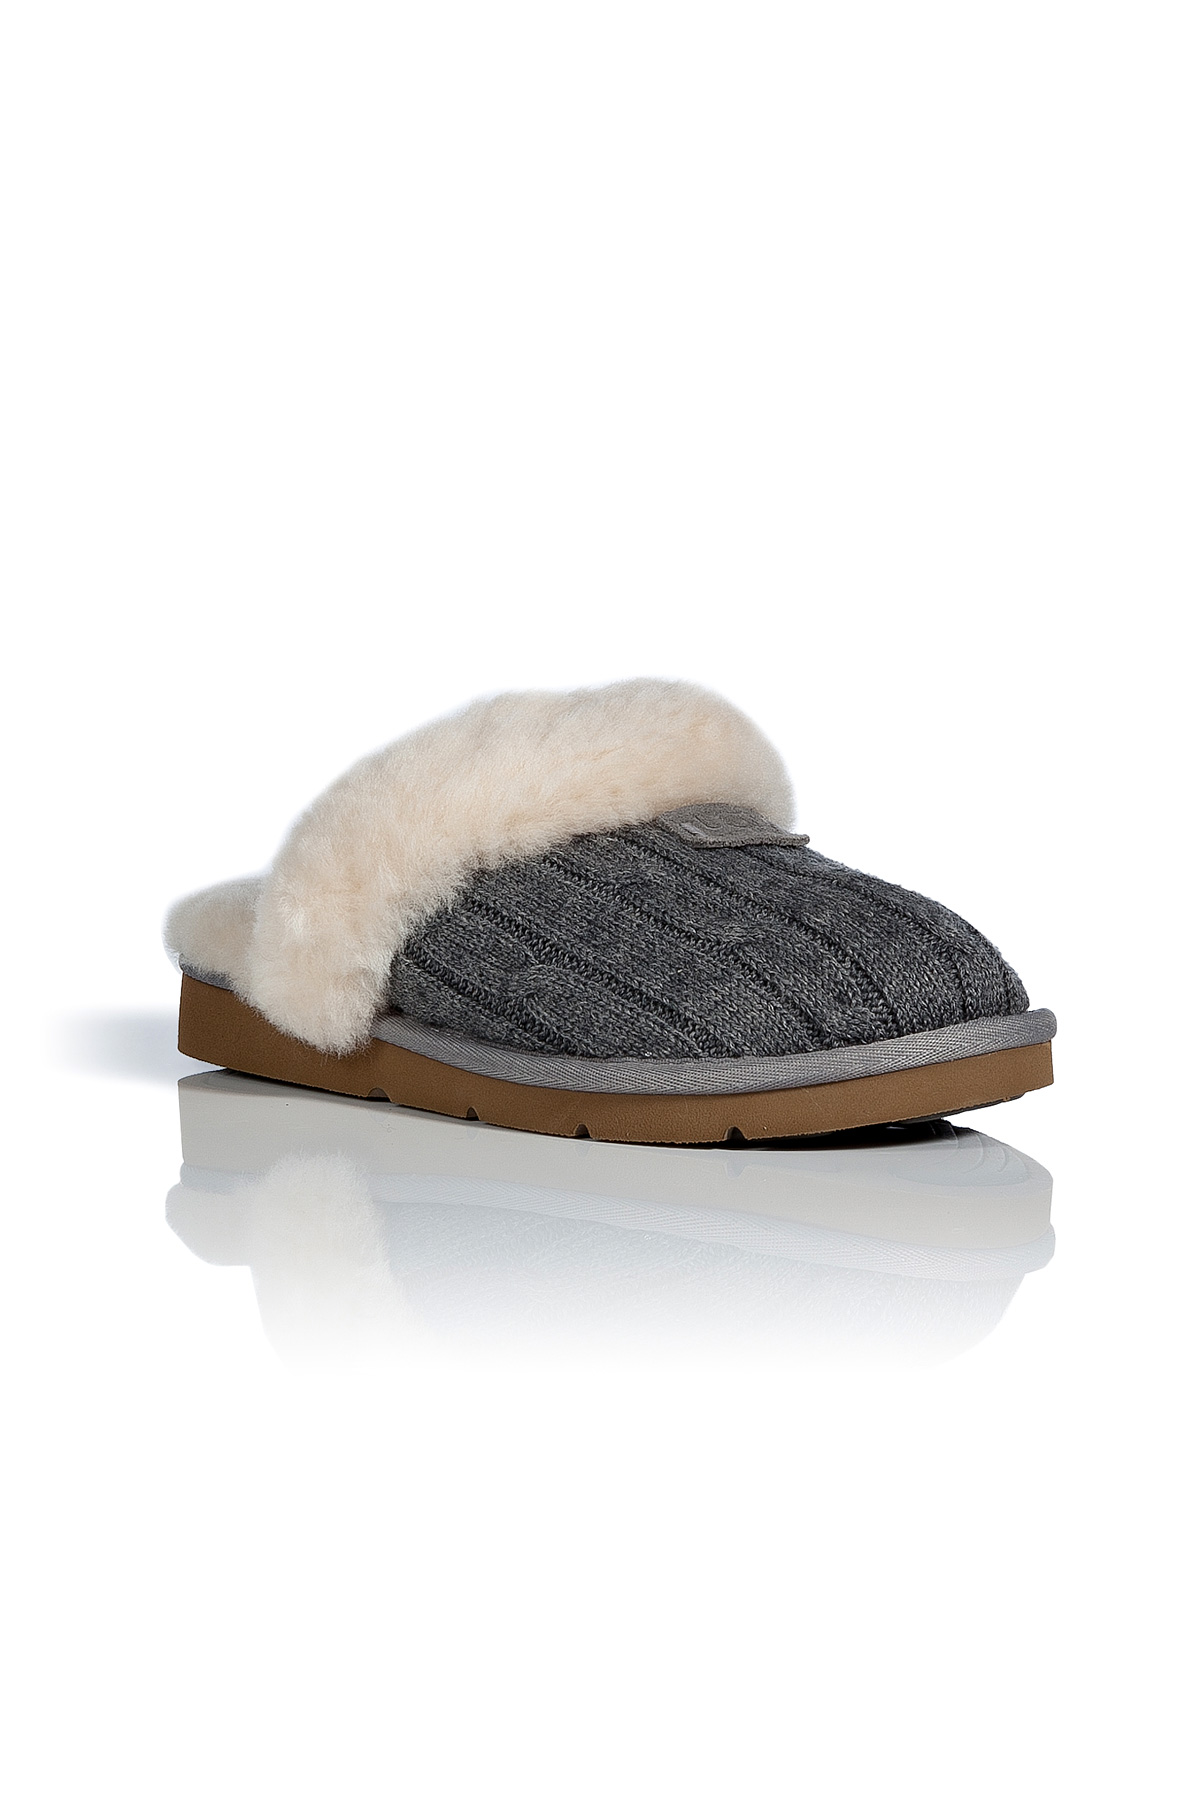 Lyst Ugg Heather Grey Cozy Knit Slippers In Gray